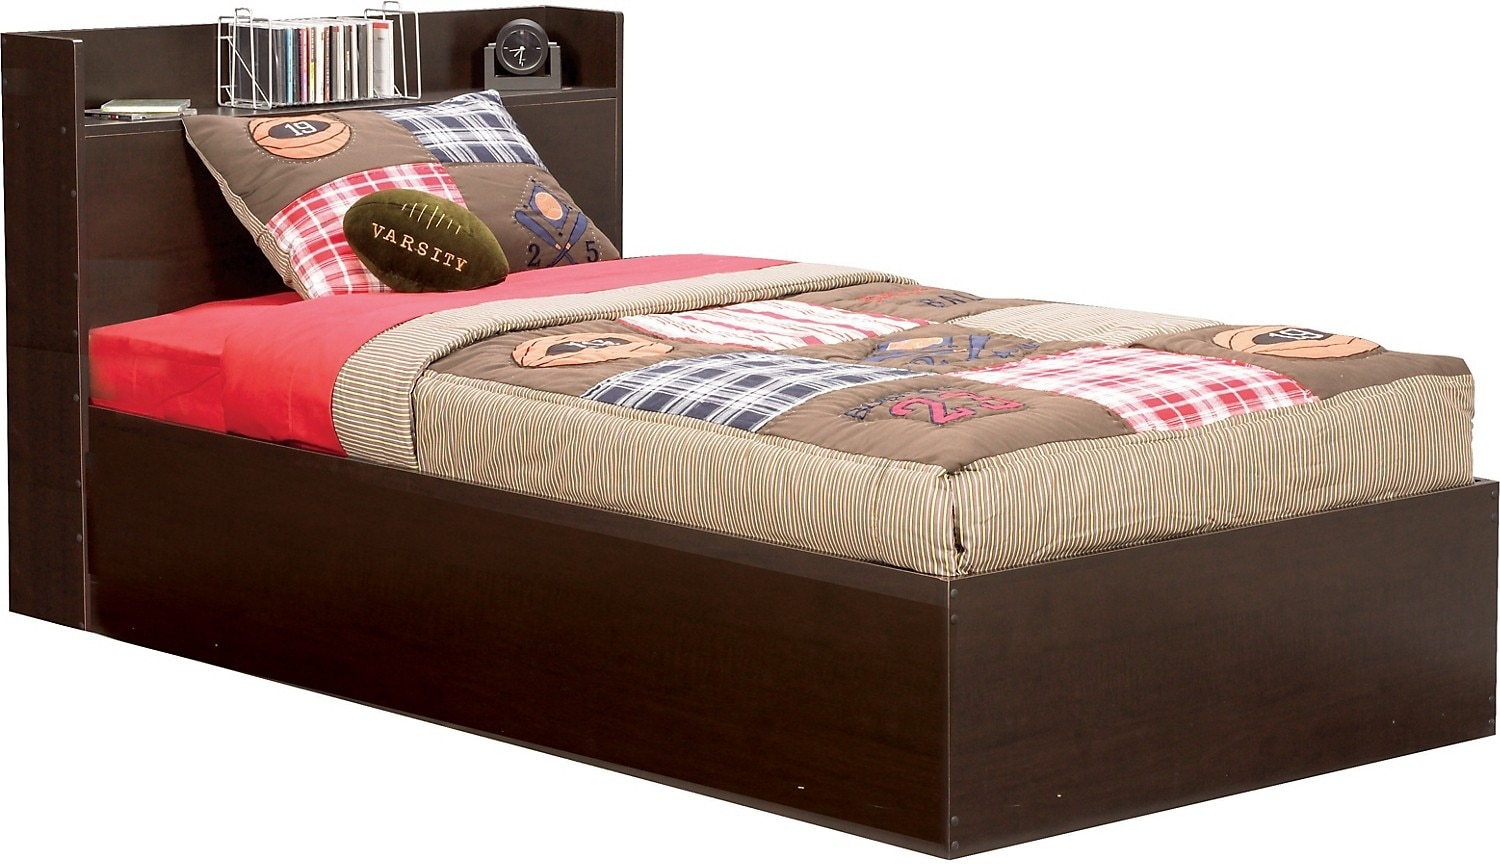 Kids Furniture - Big League Twin Mates Bed